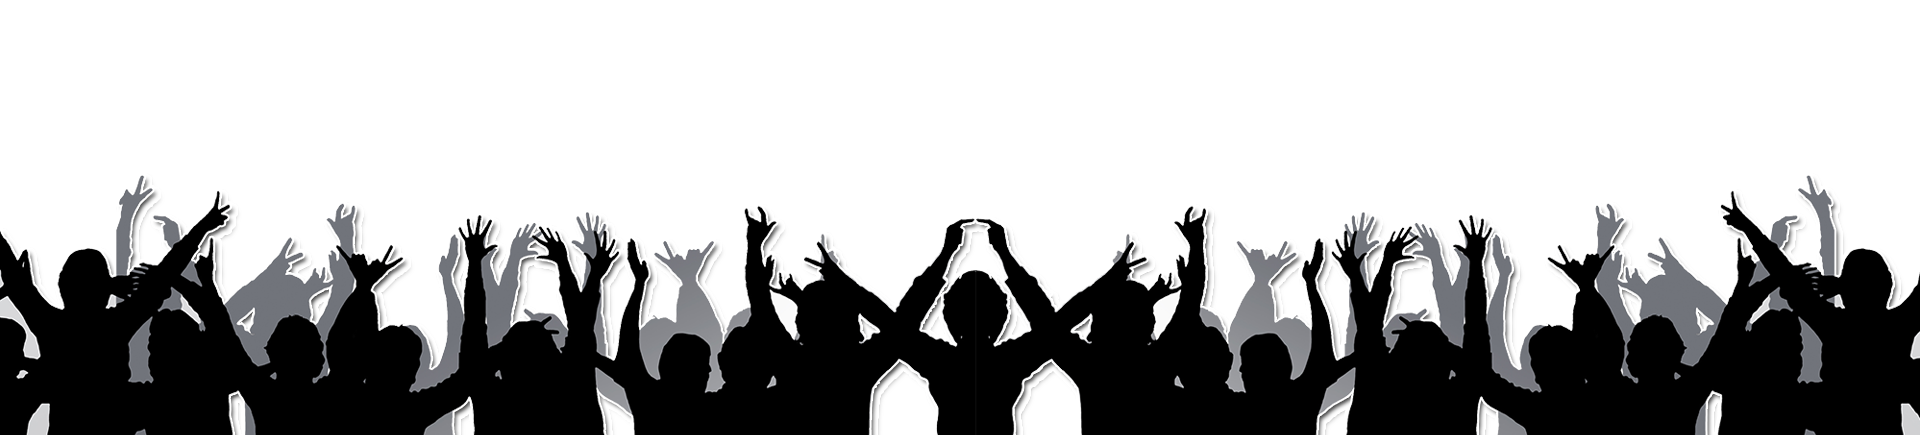 Audience Silhouette Png | www.imgkid.com - The Image Kid ...